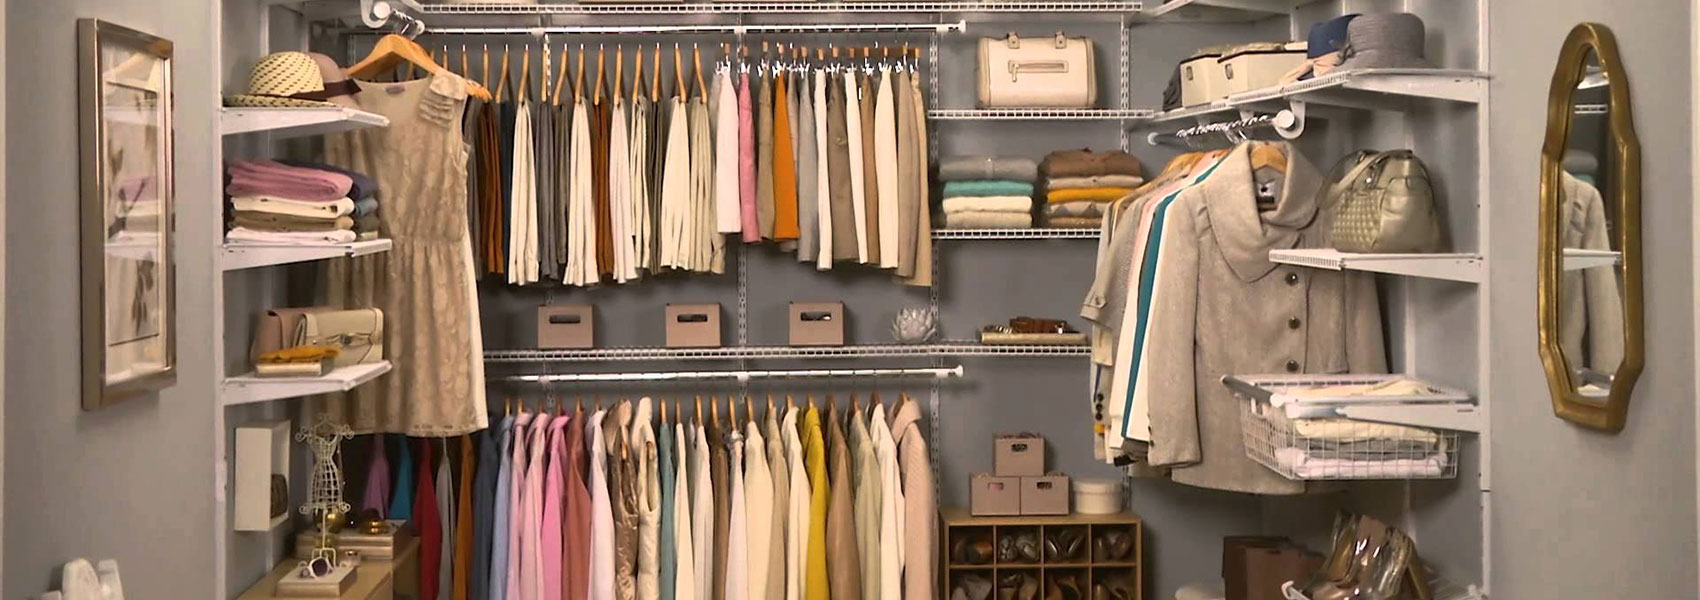 The Closet Factory has the best maintenance free organizational solutions for your home!